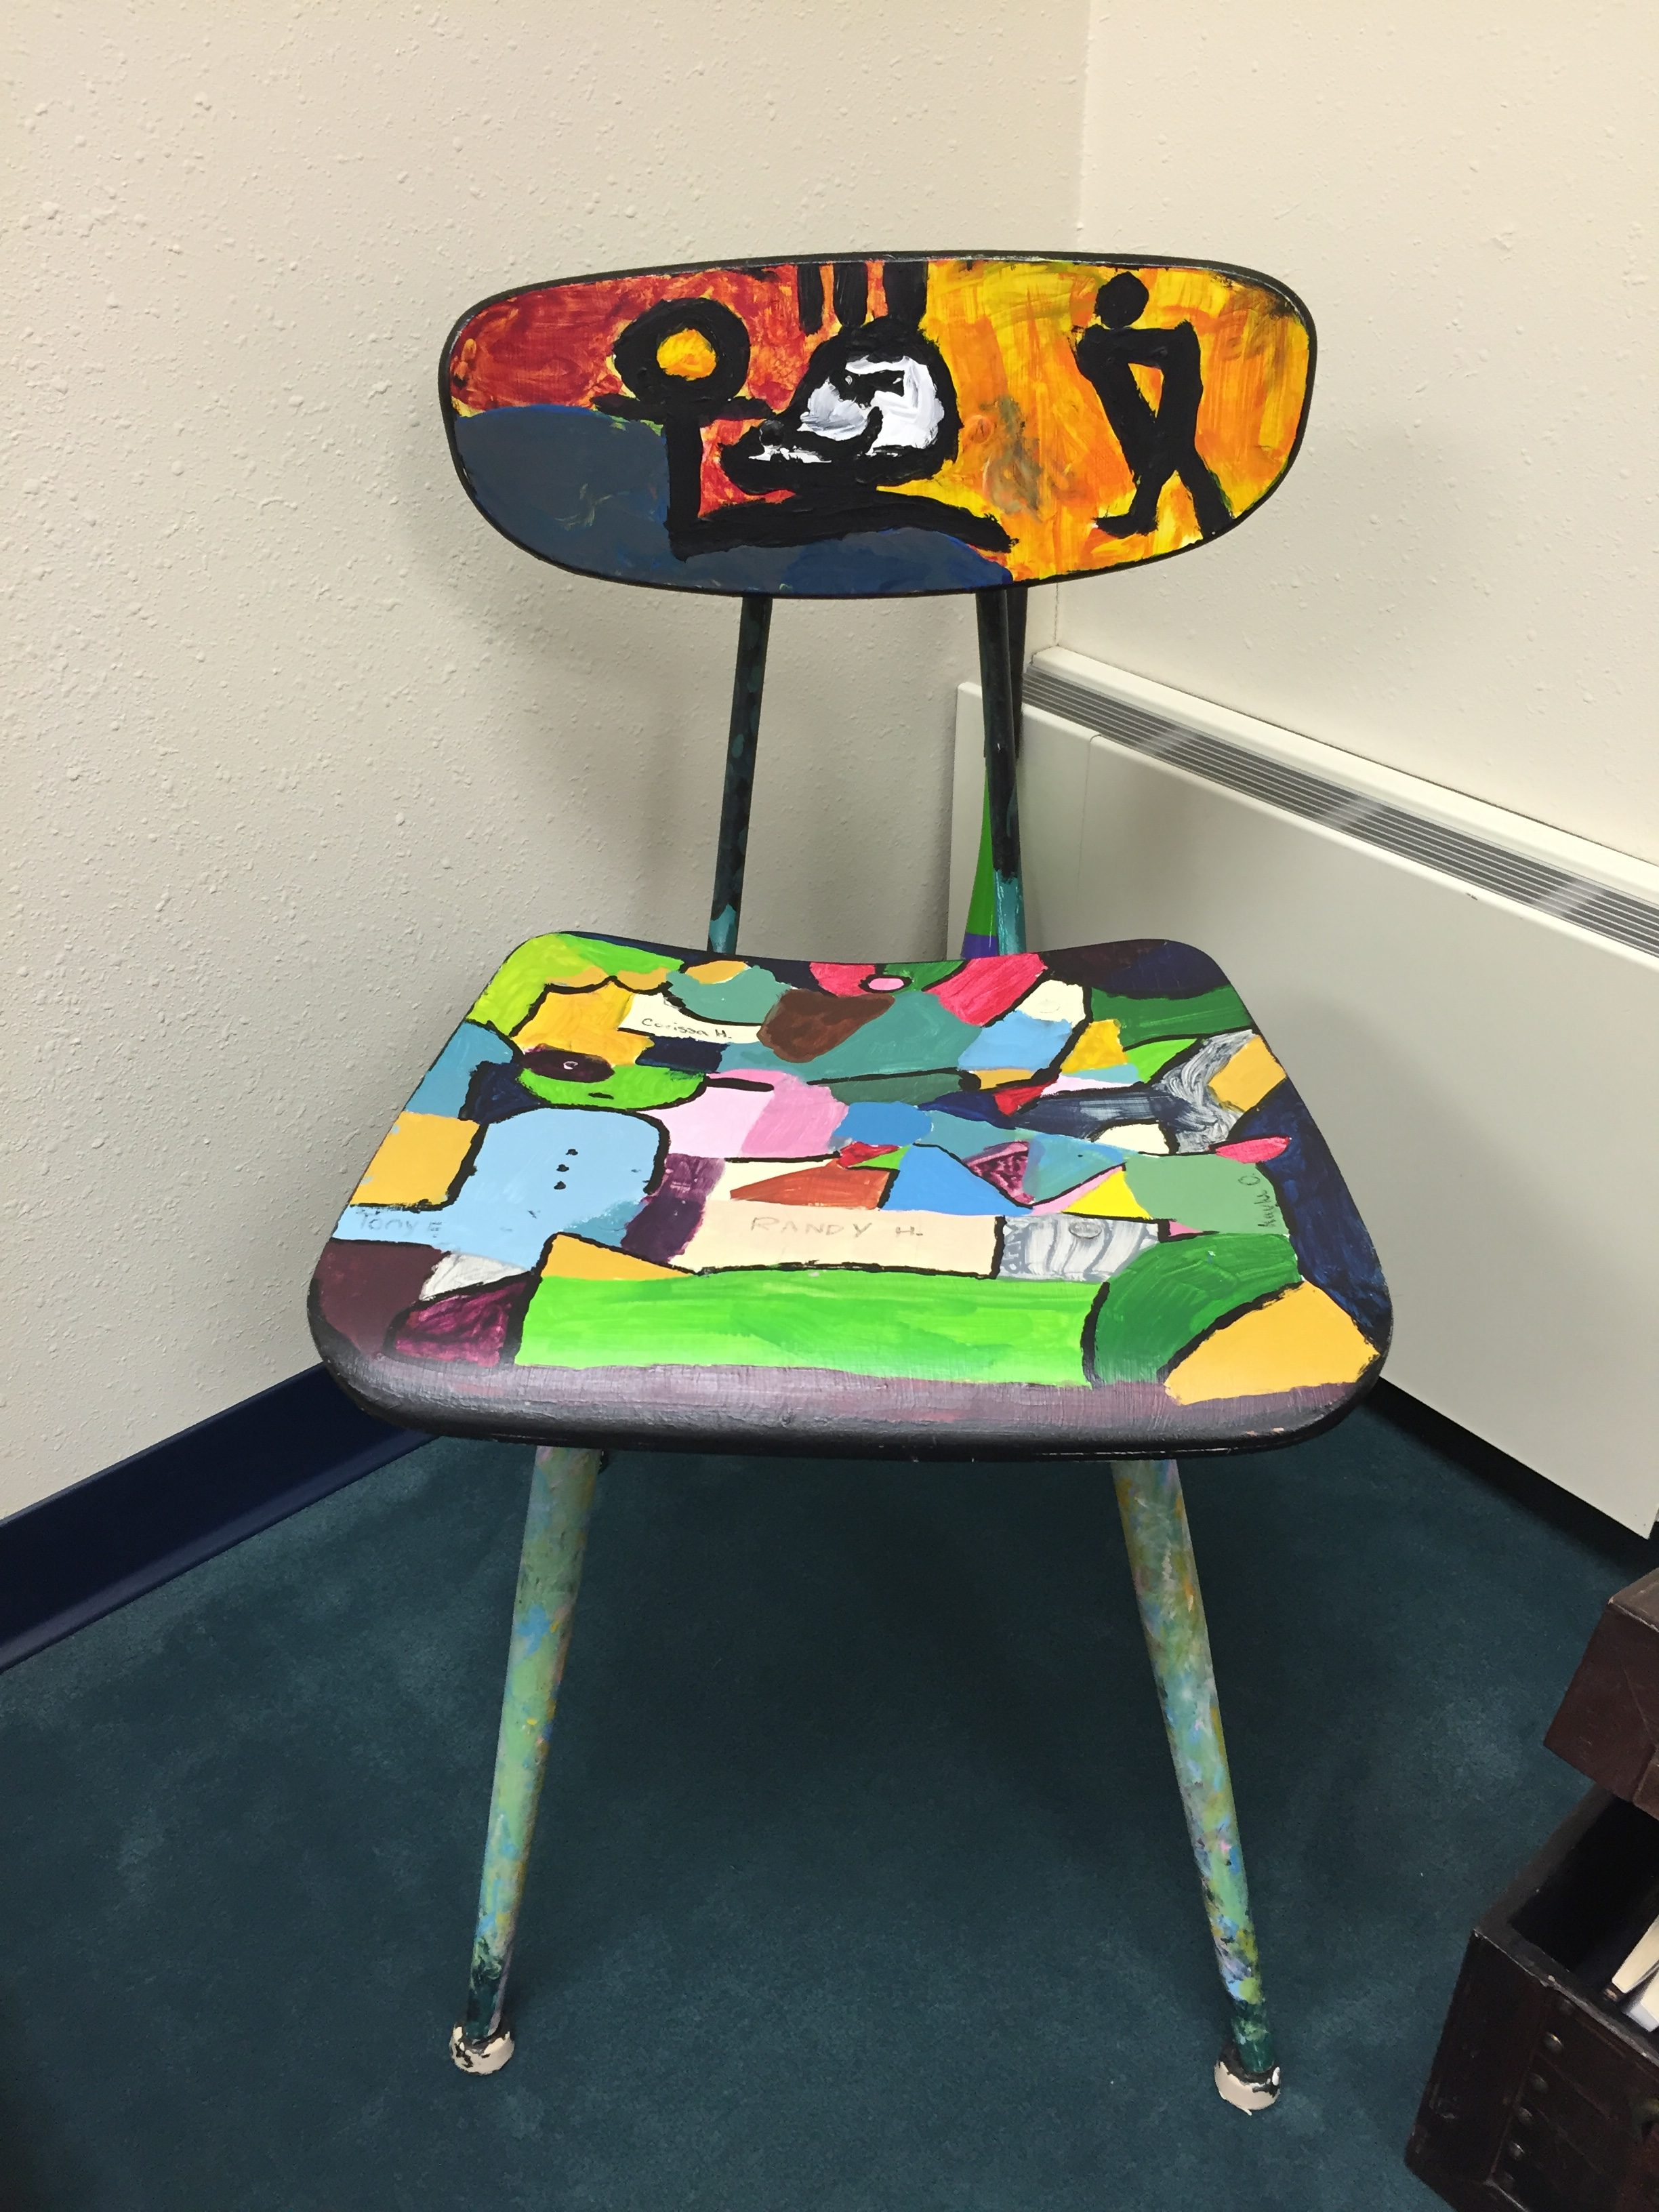 A Call for Chairs